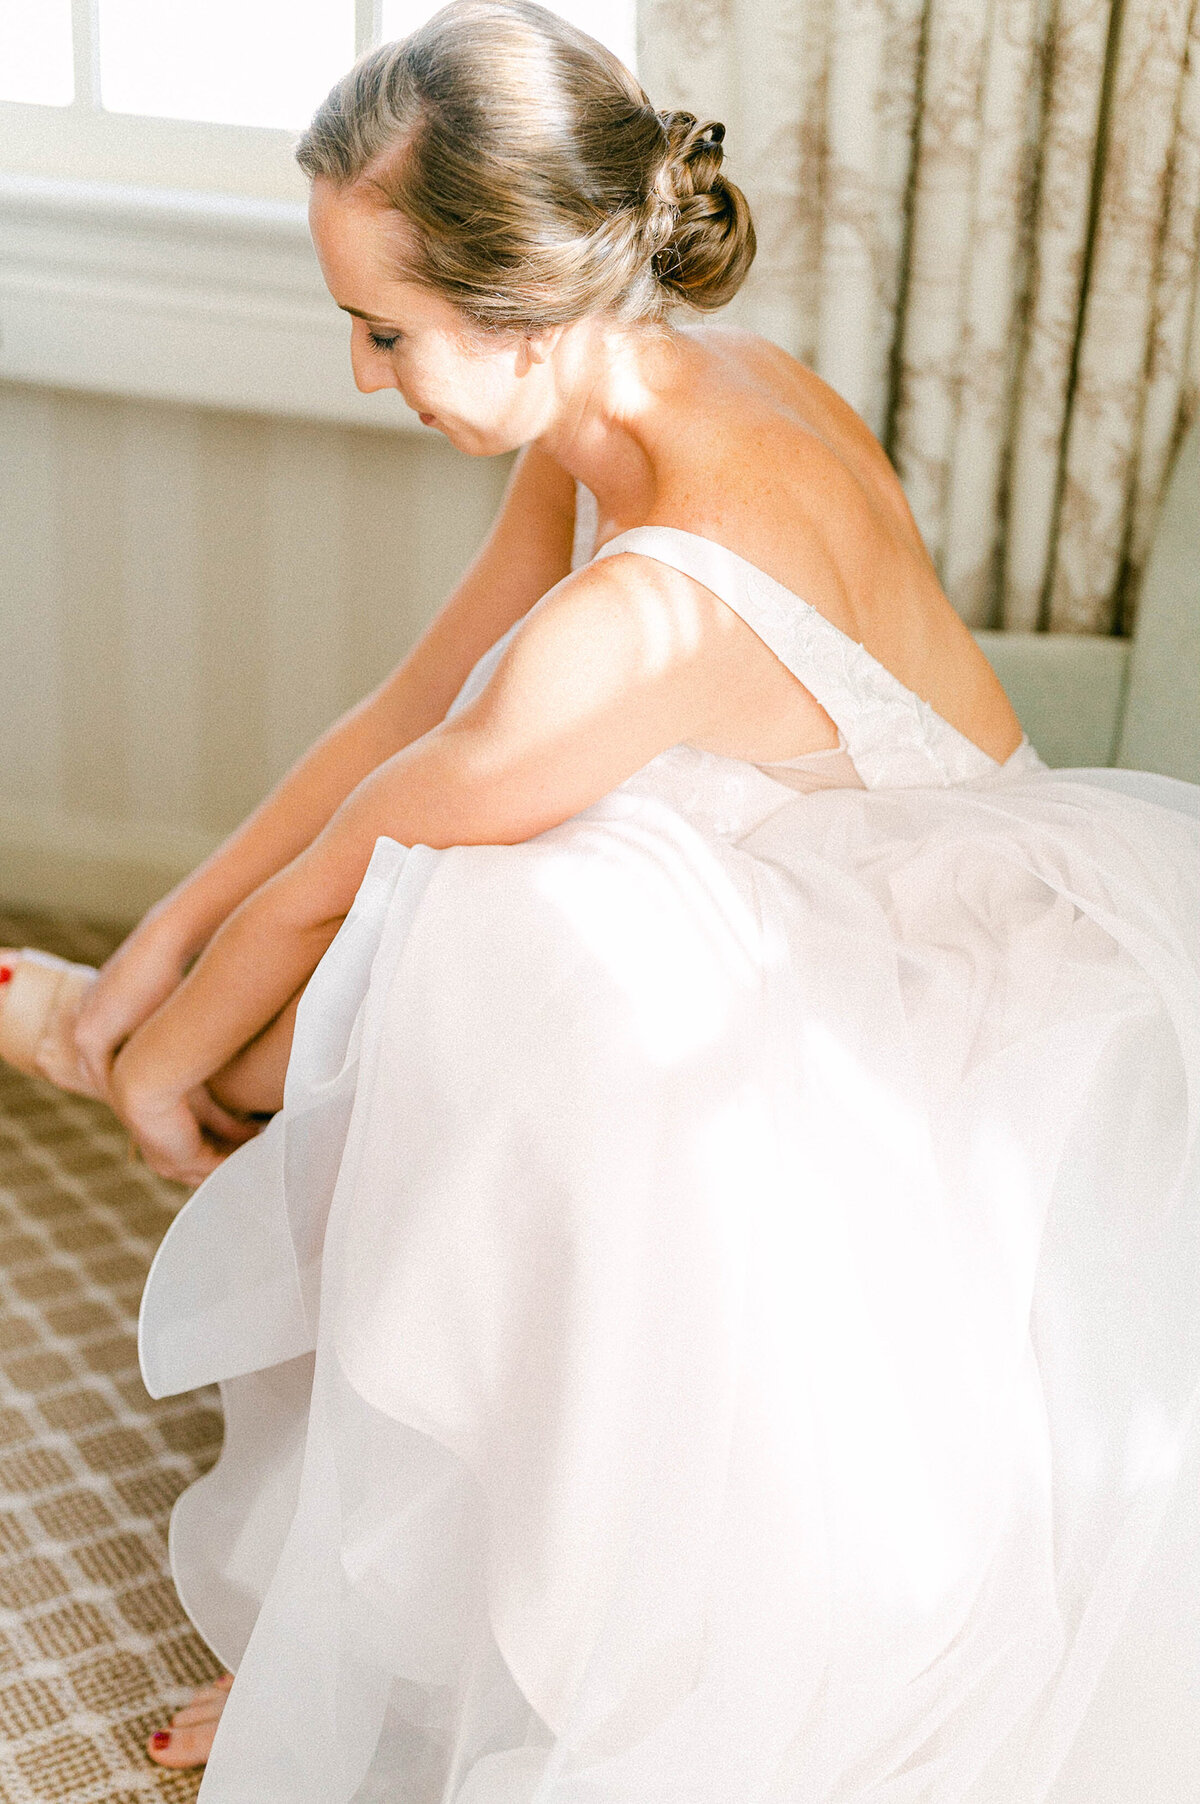 Jennifer Bosak Photography - DC Area Wedding Photography - DC, Virginia, Maryland - Jeanna + Michael - Decatur House Wedding - 52